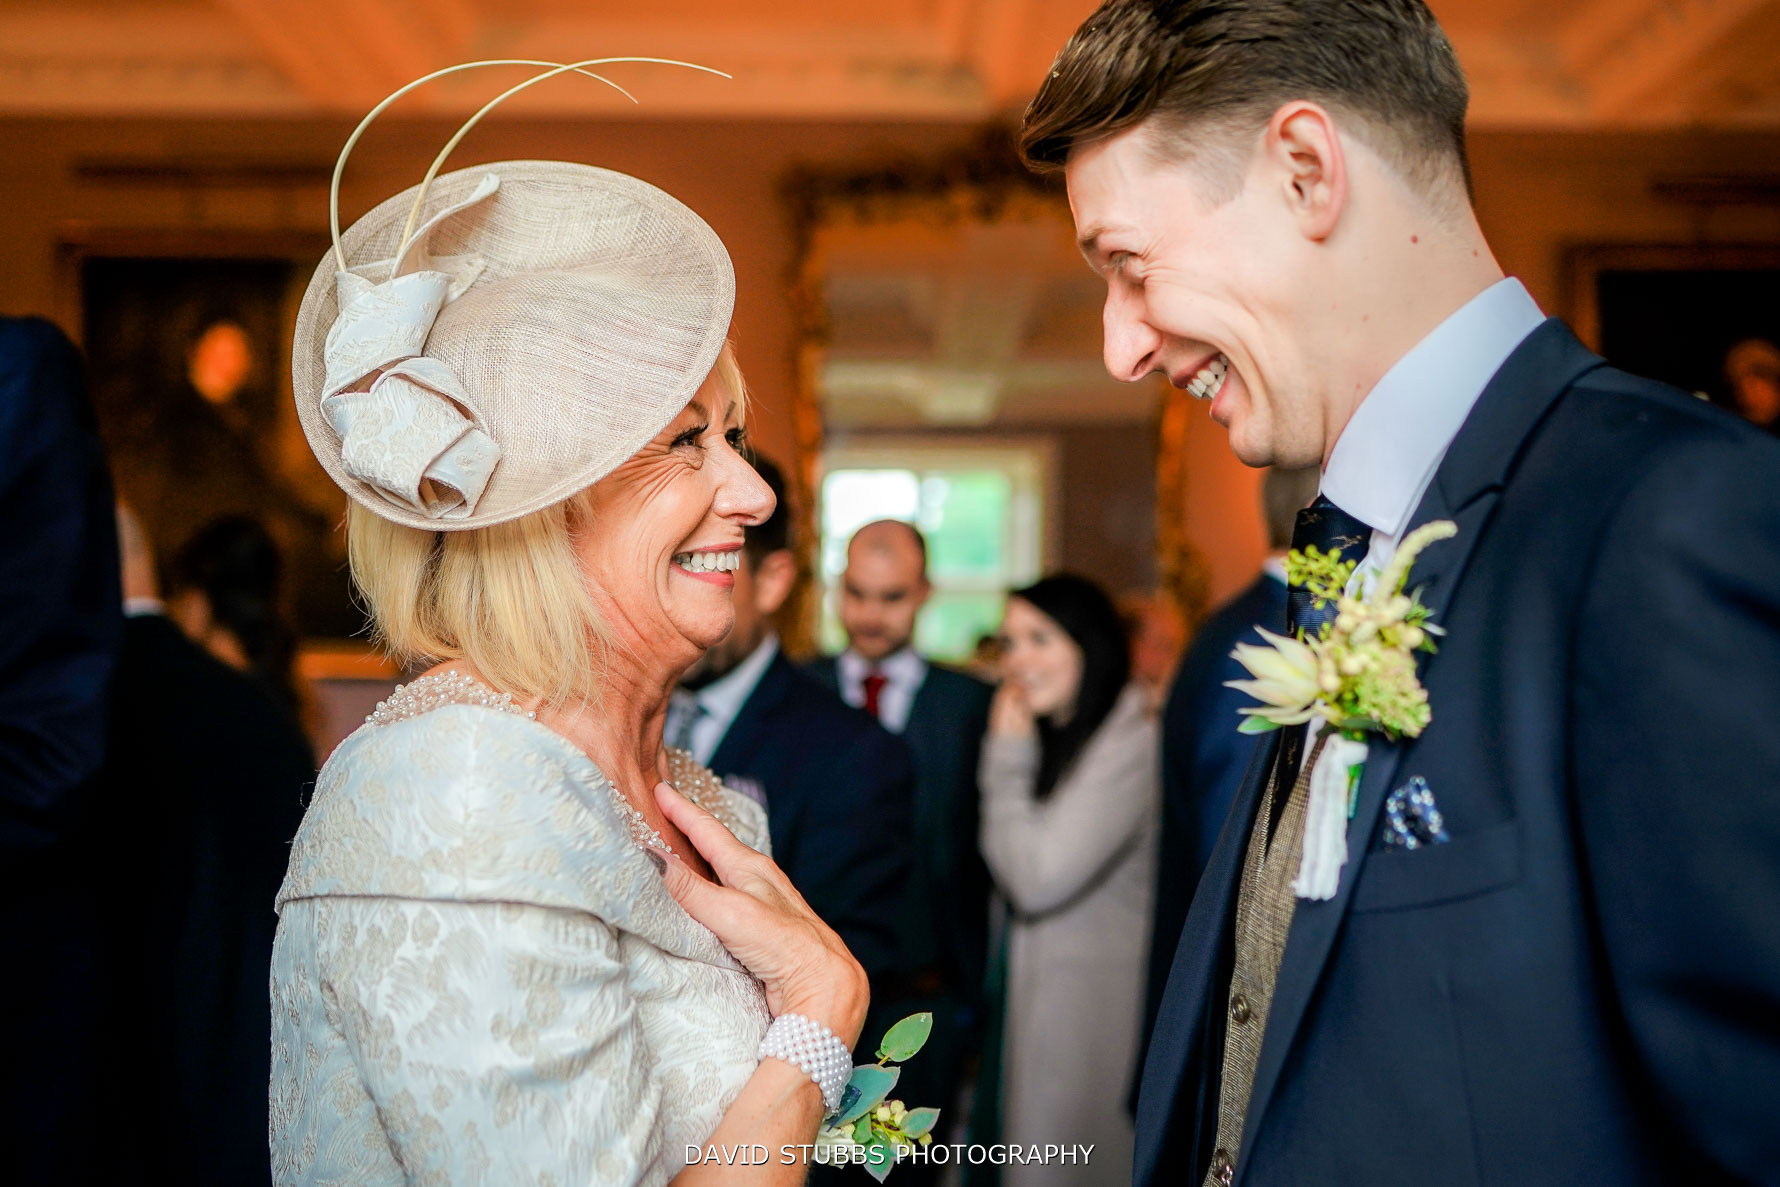 mum and son smiling at each other